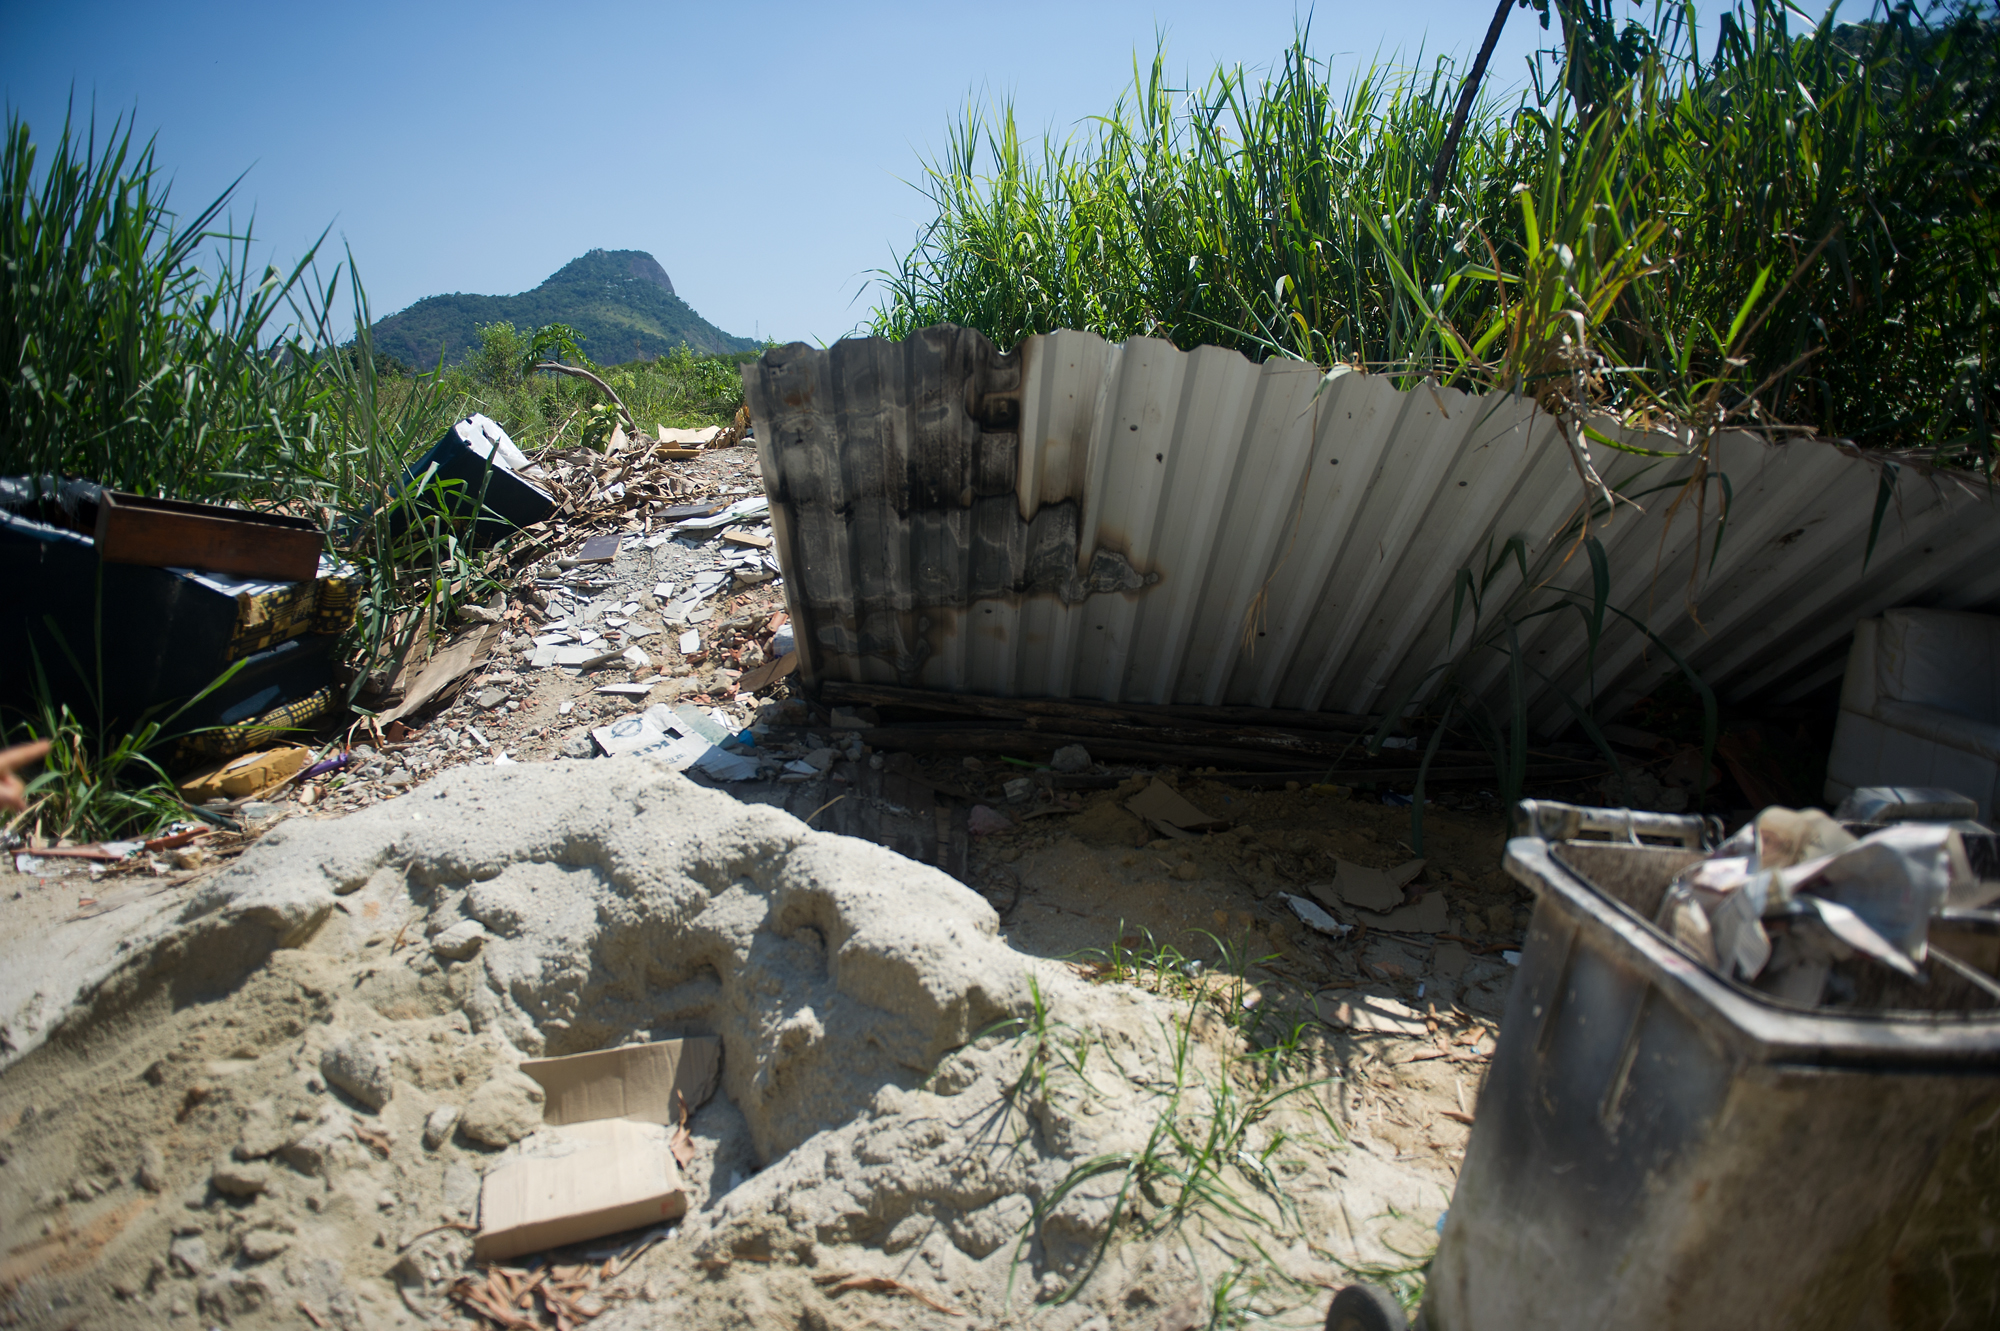 The entrance to the planned relocation area of Vila Autodromo, which has been deemed a high-risk area for mudslides.